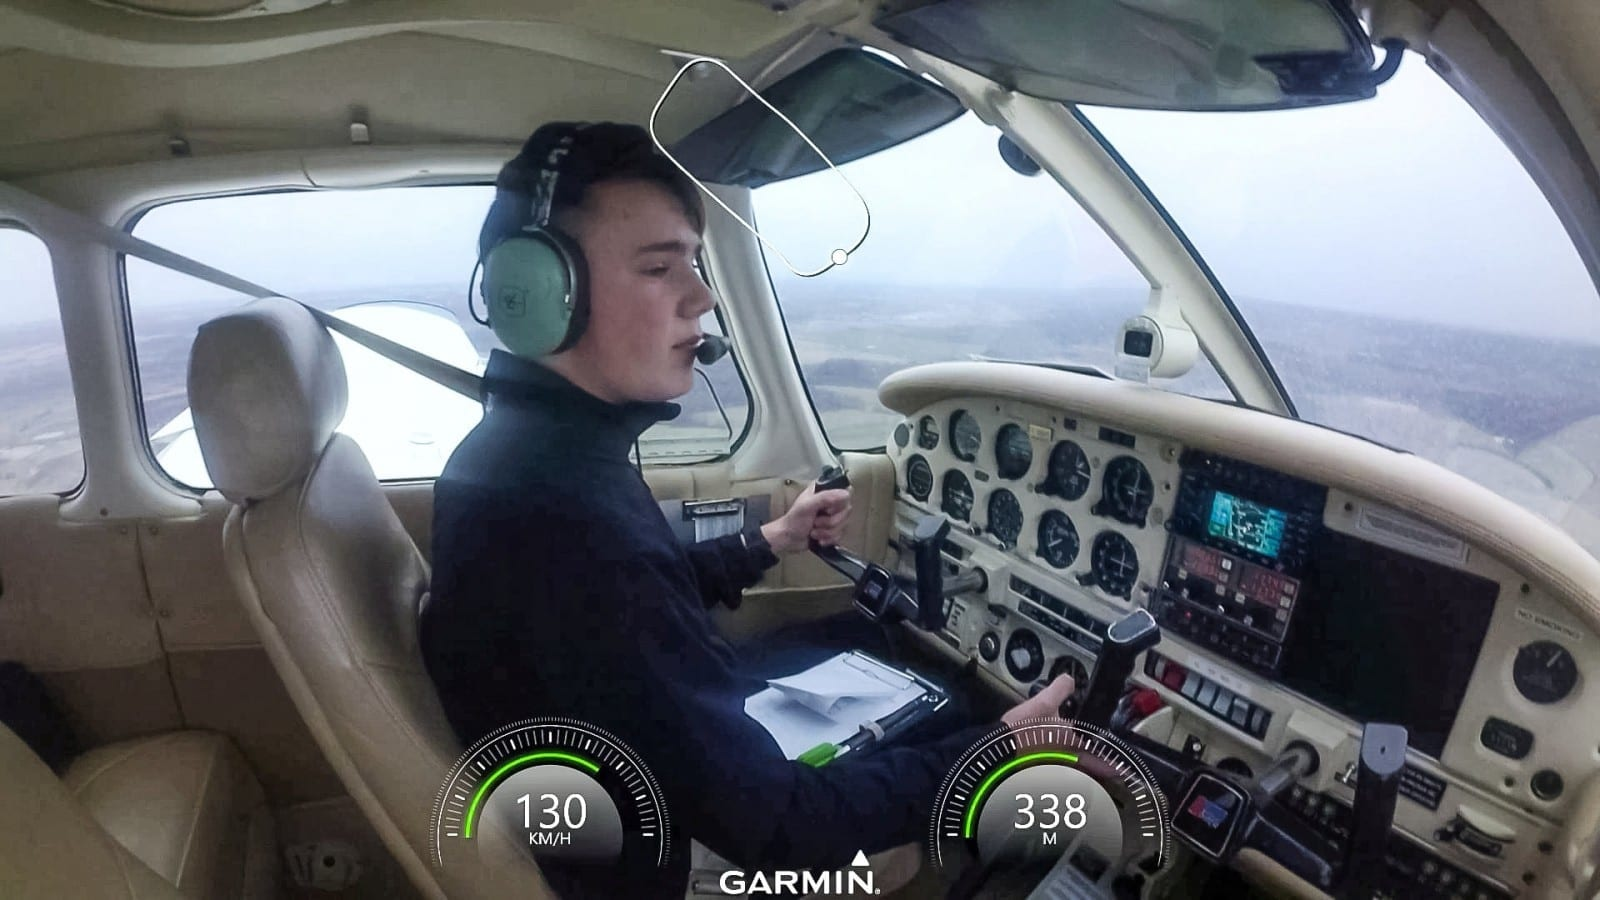 14-Year-Old Has Become The Youngest Brit To Fly Solo In A Powered Aircraft – Three Years Before He's Even Allowed To DRIVE